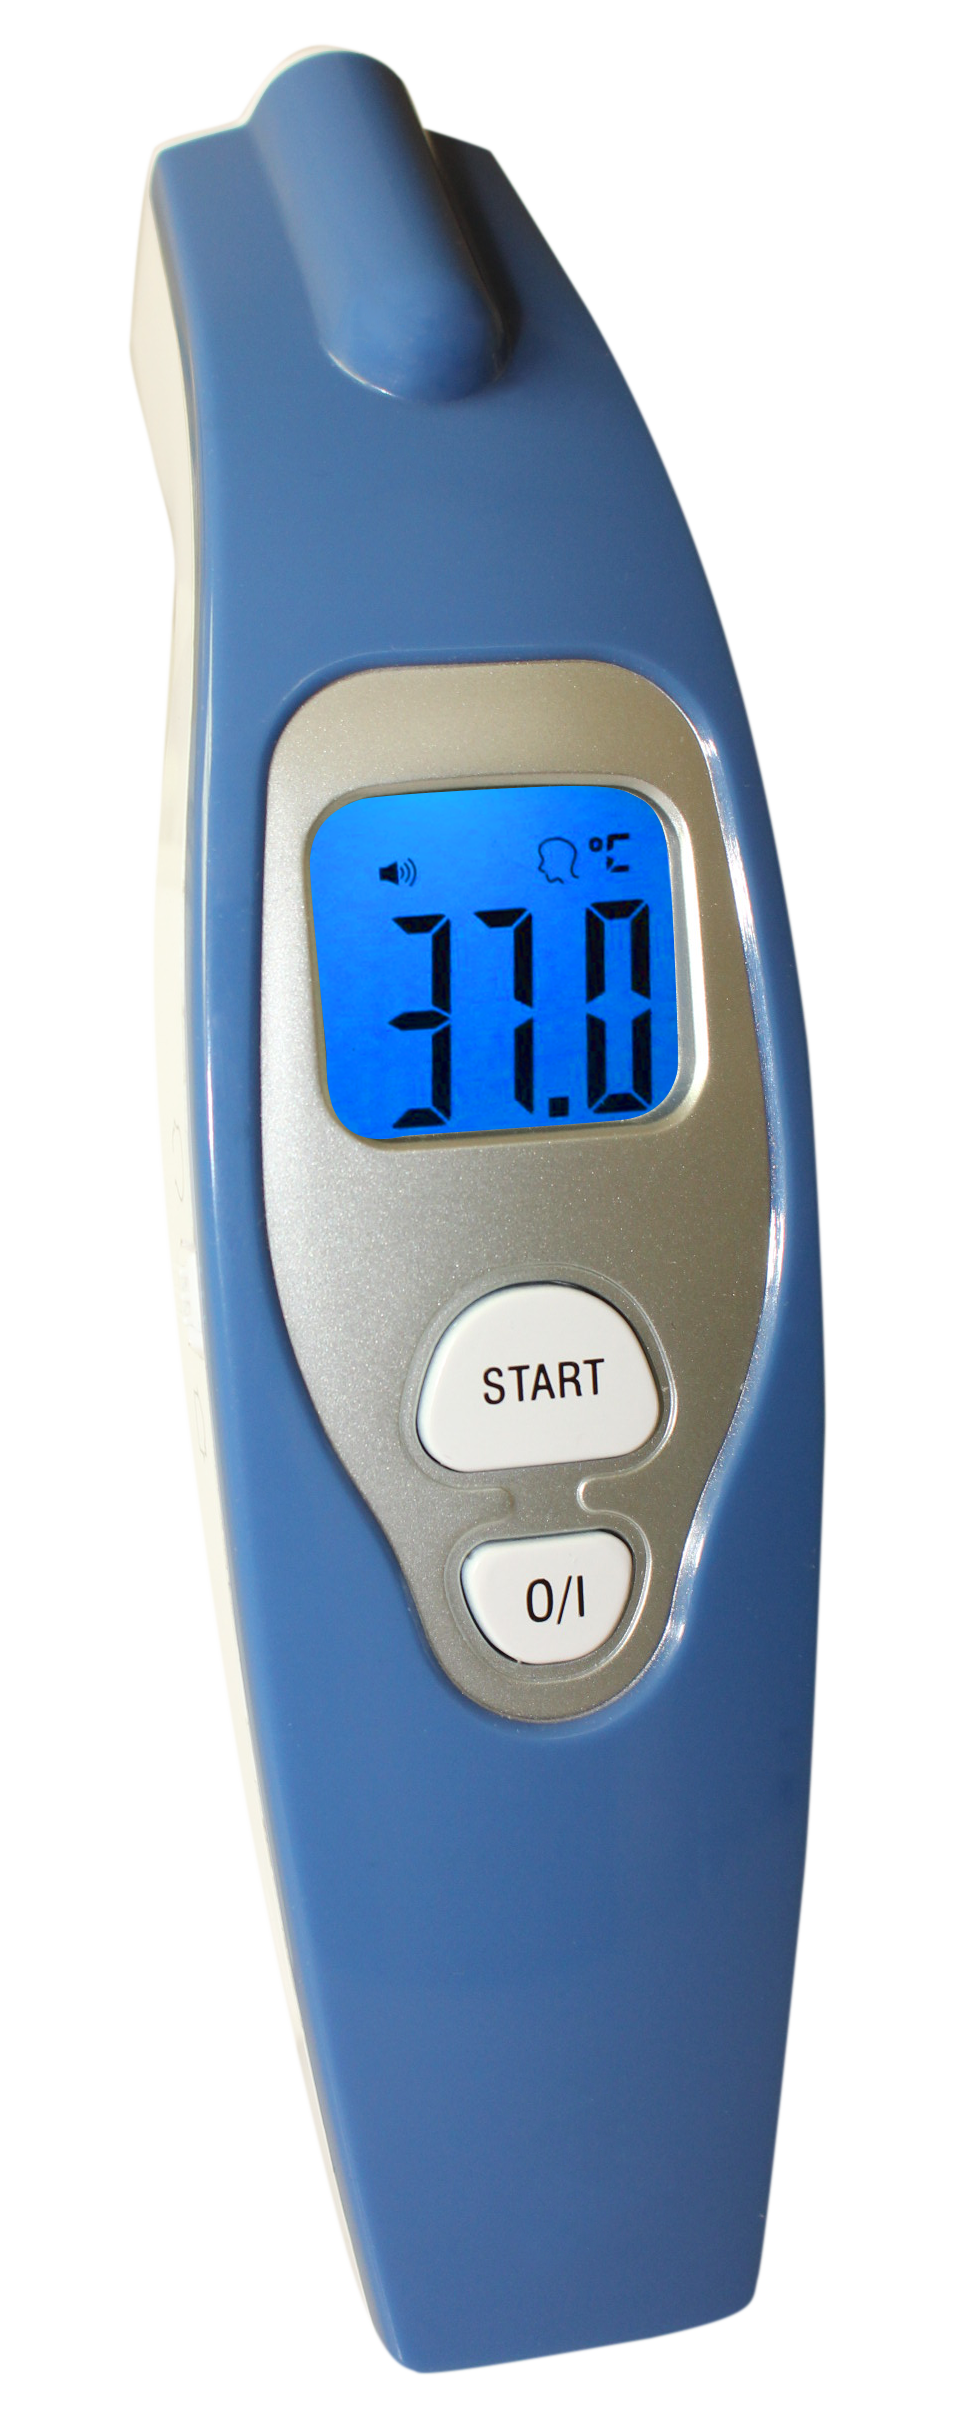 New Type Infrared Non-contact Forehead Object Temperature Thermometer